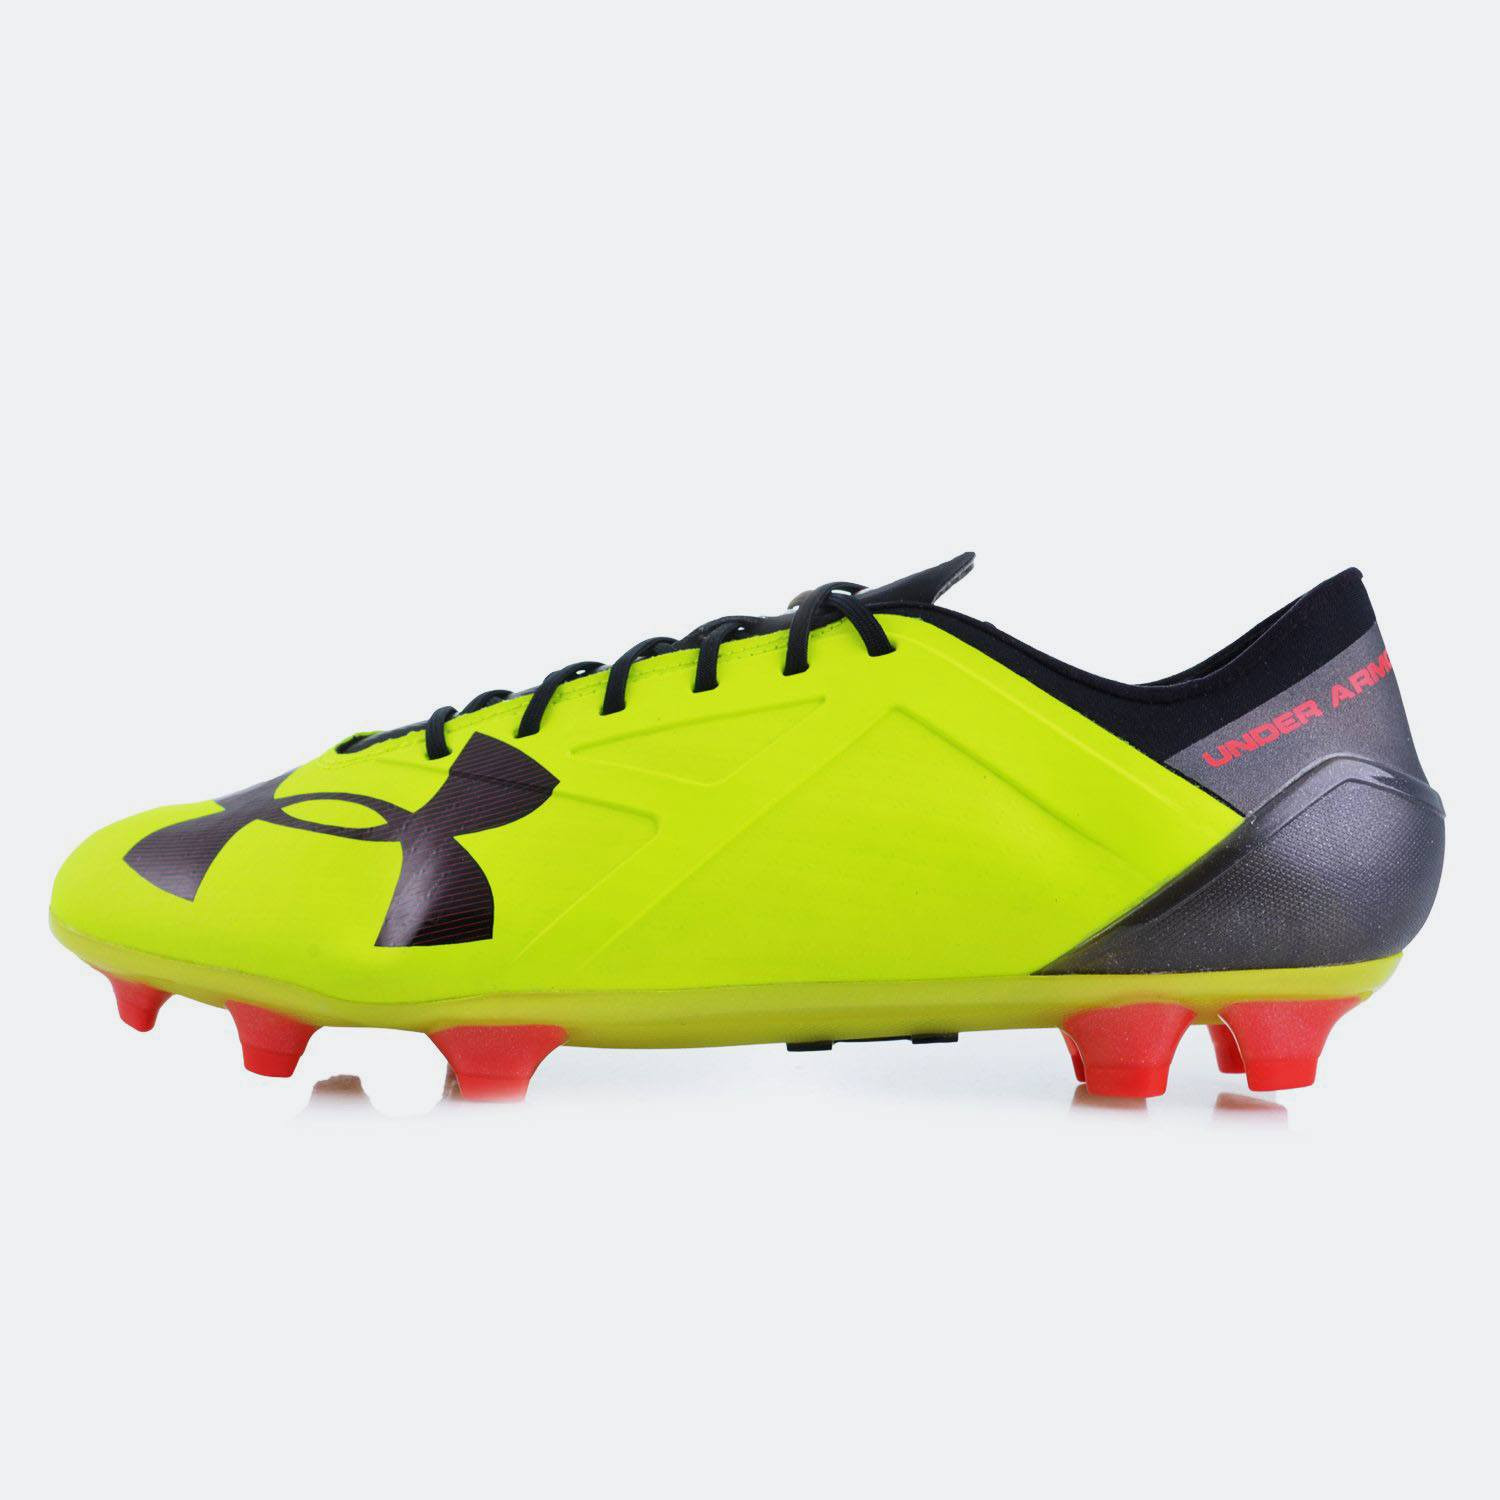 Under Armour Spotlight Fg Ftw (1040010944_26026)